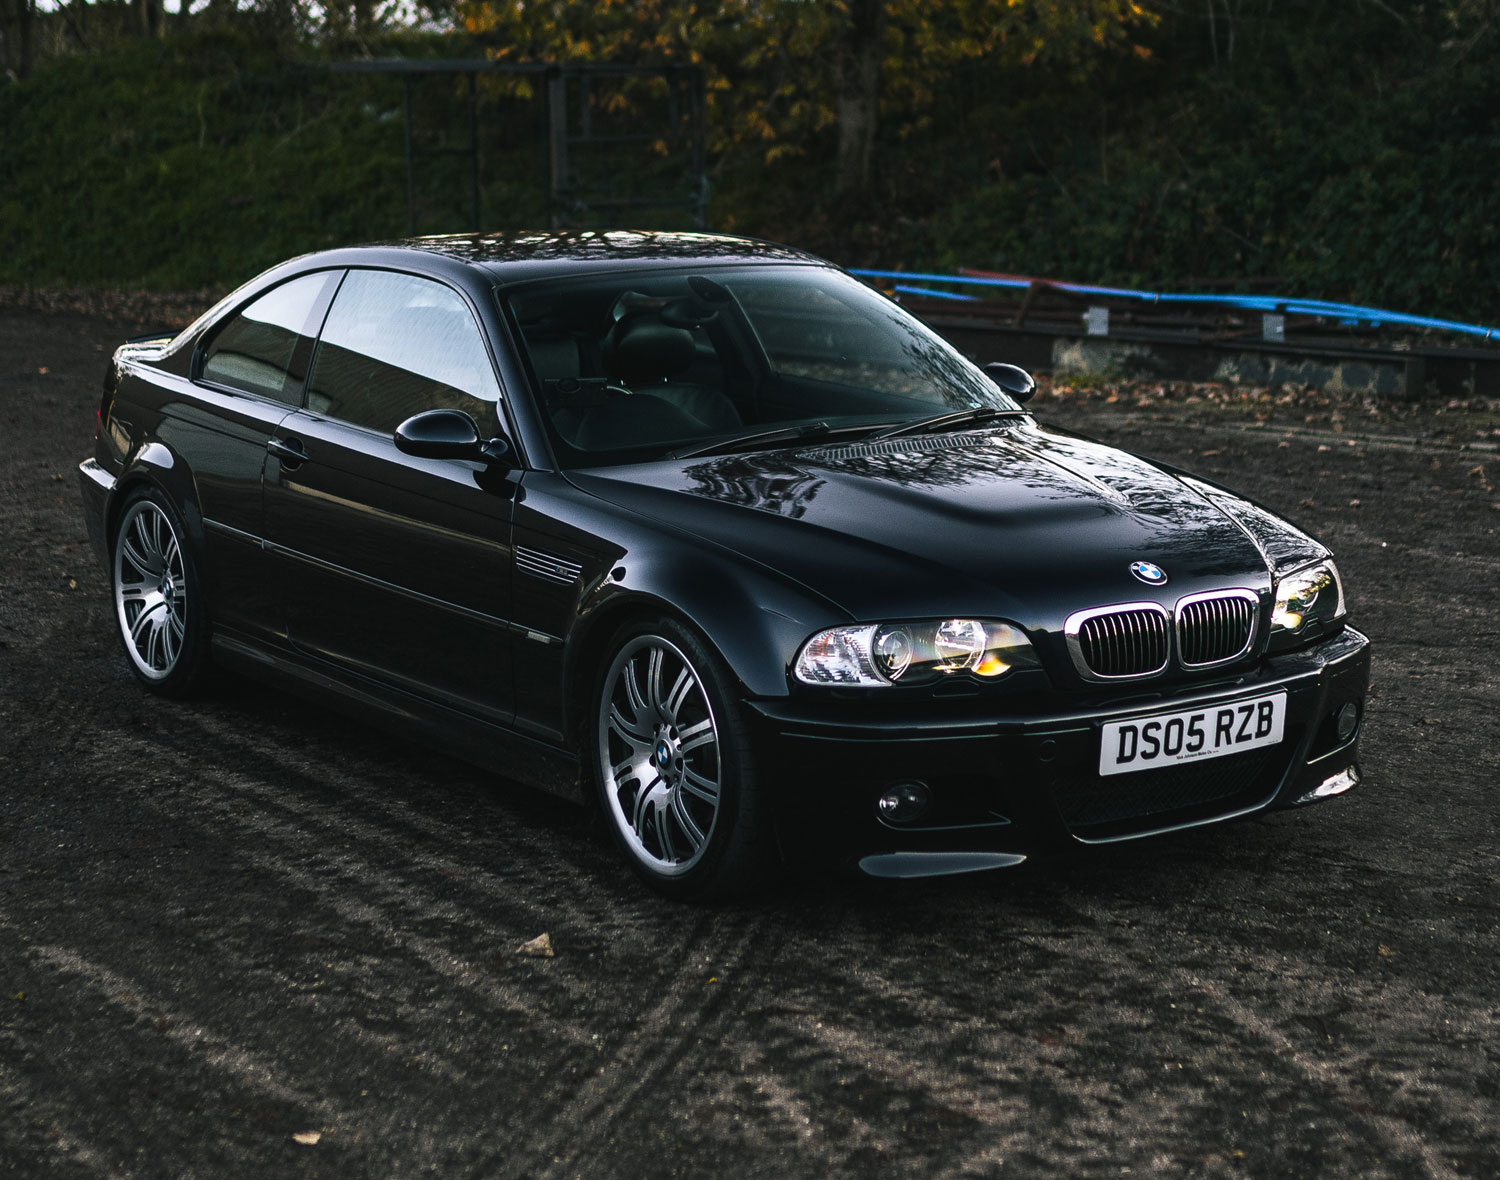 Win This Bmw M3 E46 Coupe Llf Games Your Chance To Win Bmw M3